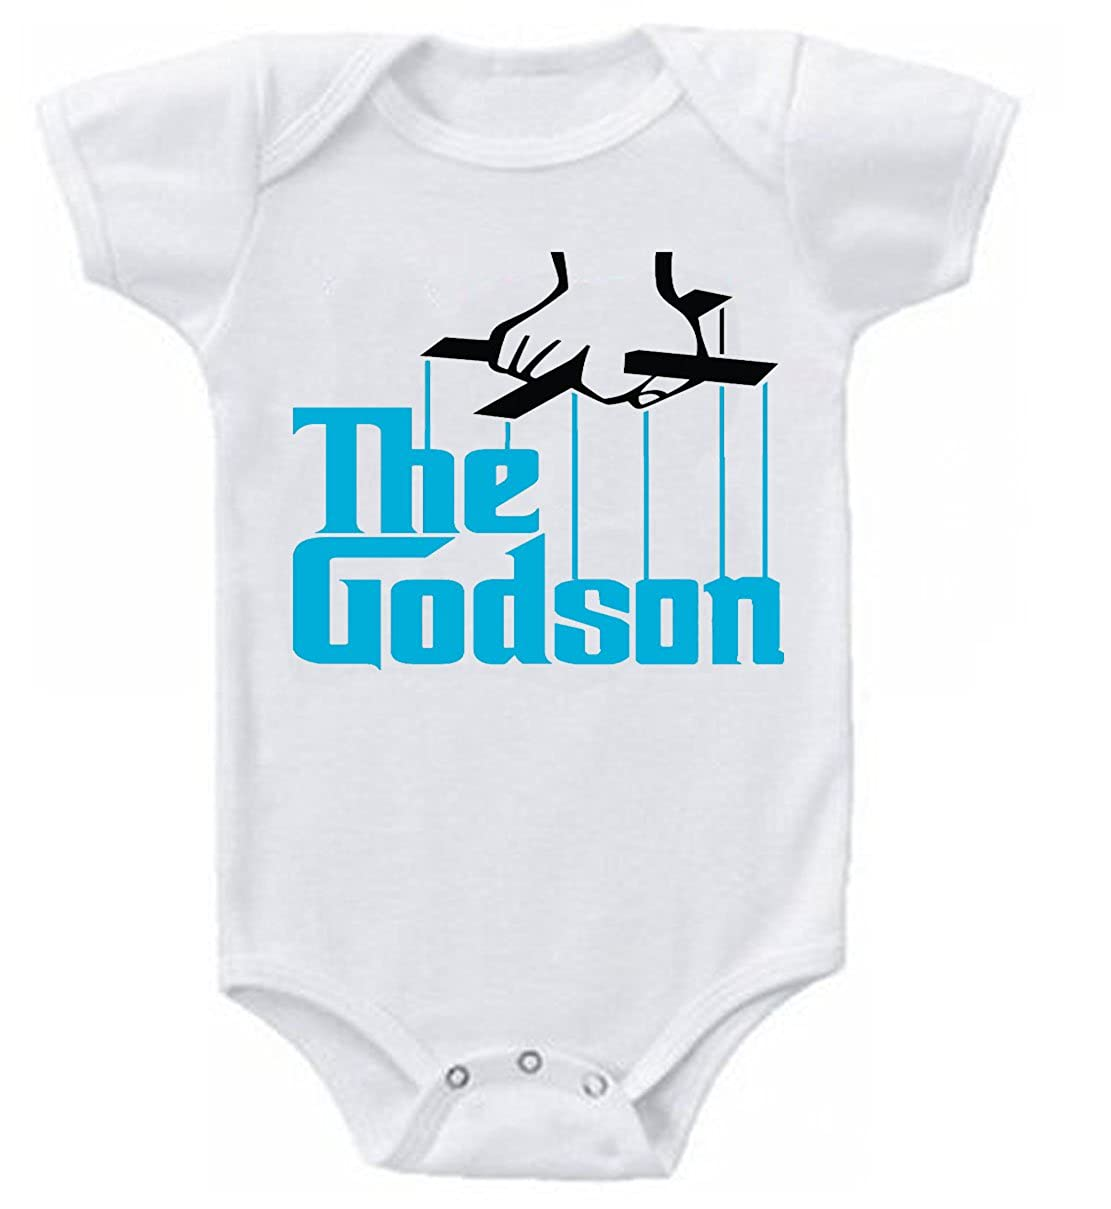 4d02186f6 Dazzle The Godson Funny Baby Onesie Bodysuit (12-18 Months, White ):  Amazon.ca: Clothing & Accessories